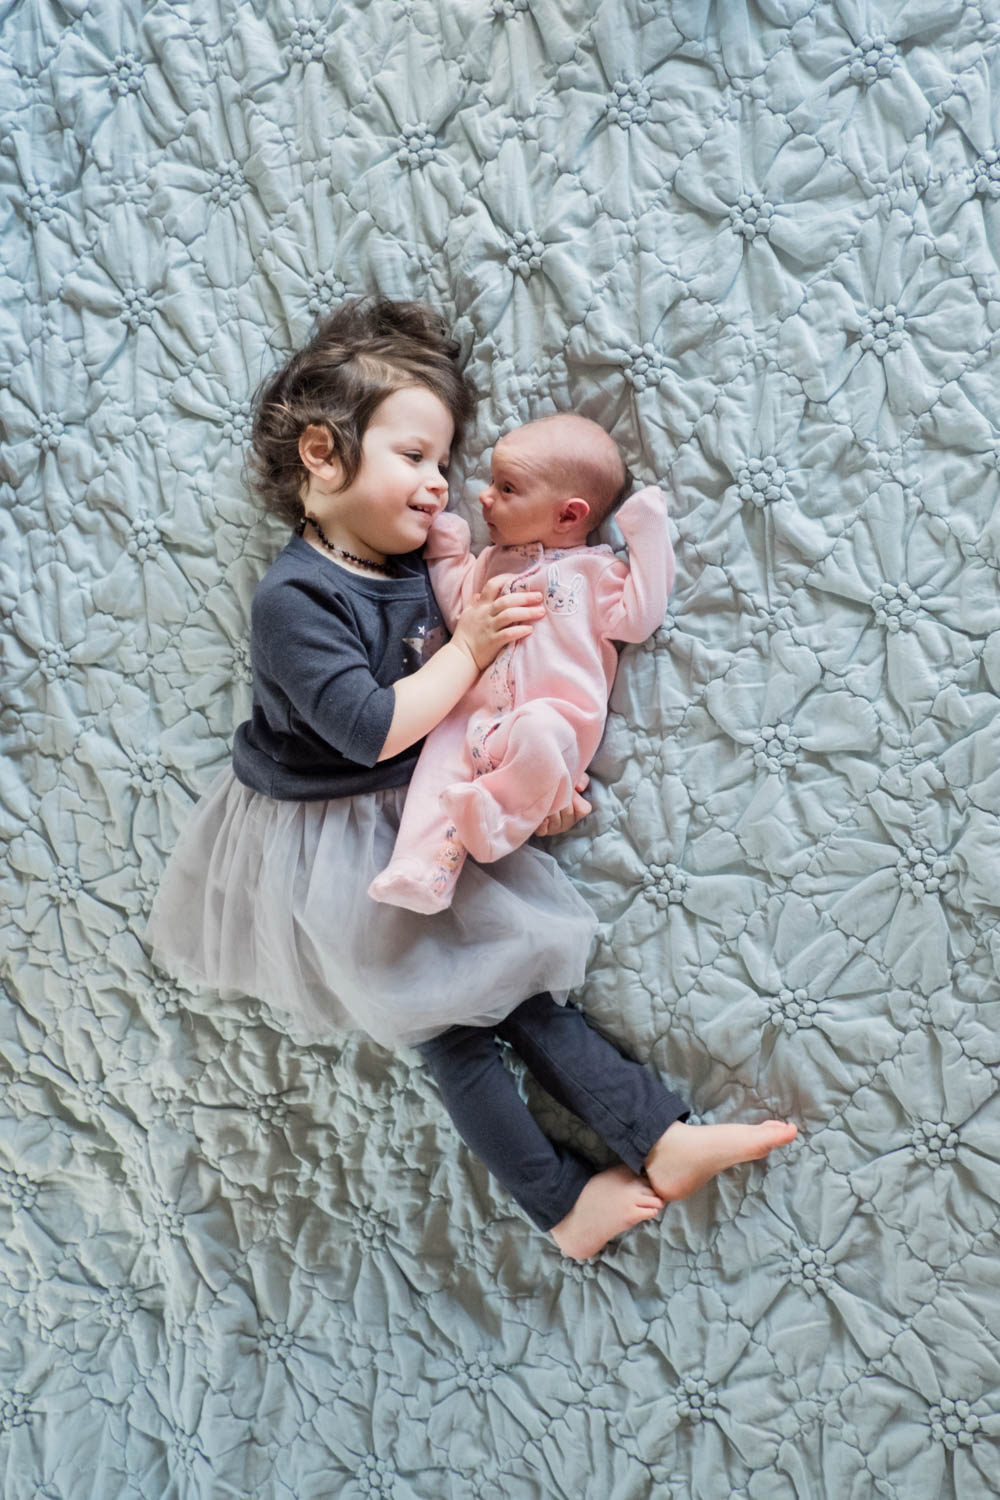 sister-with-newborn-photograph-chicago-.jpg